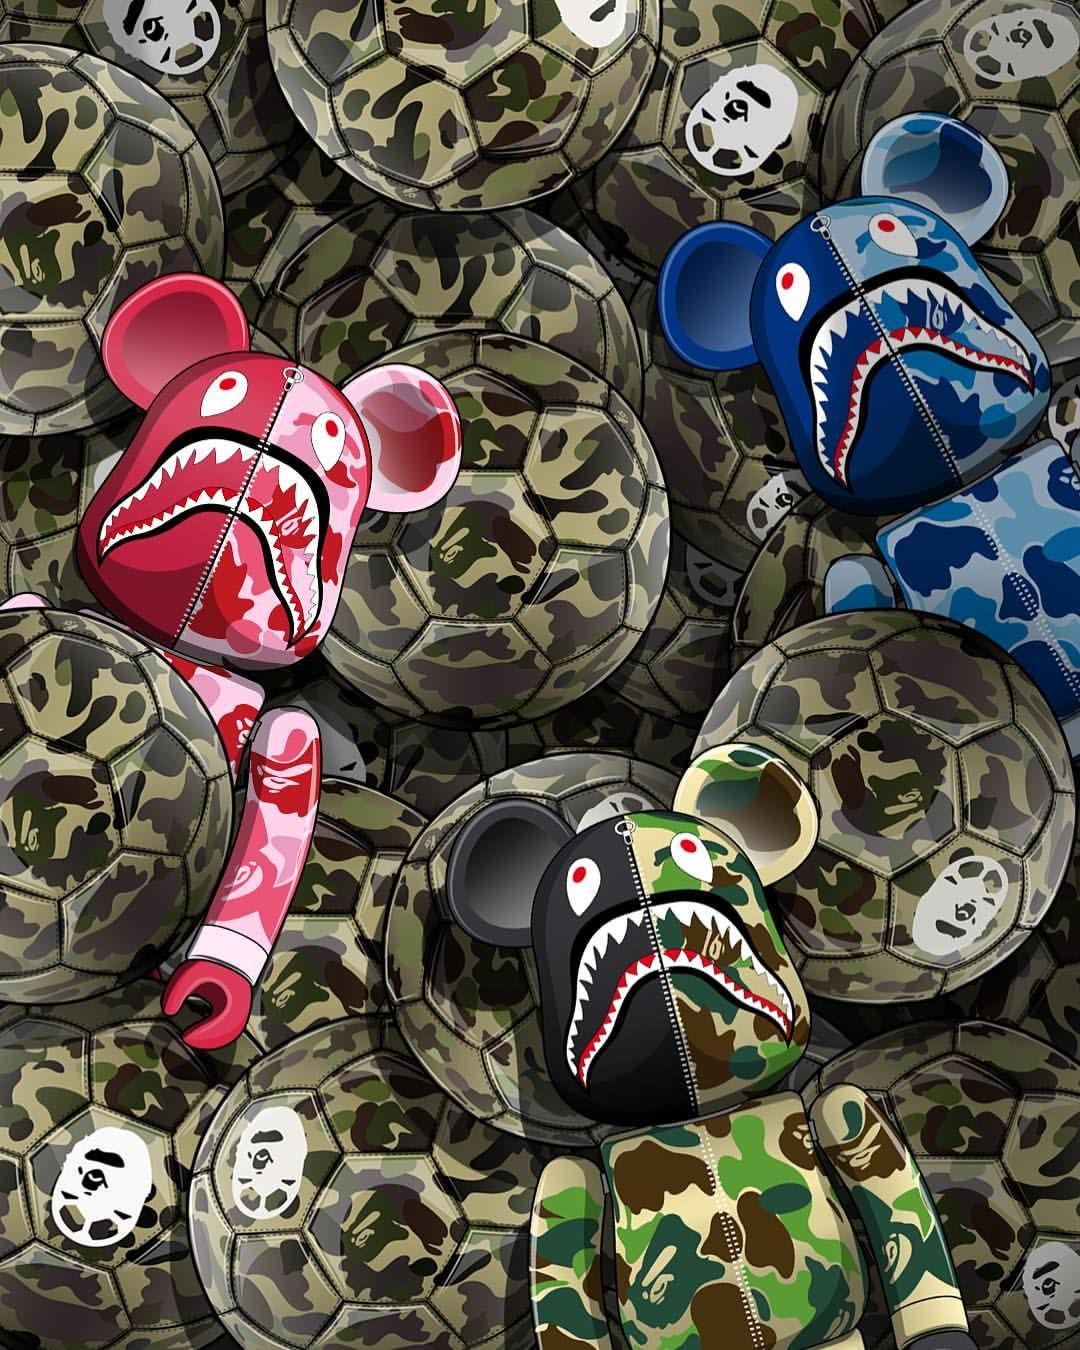 20 Supreme Bape Wallpaper Cartoon Pictures And Ideas On Weric